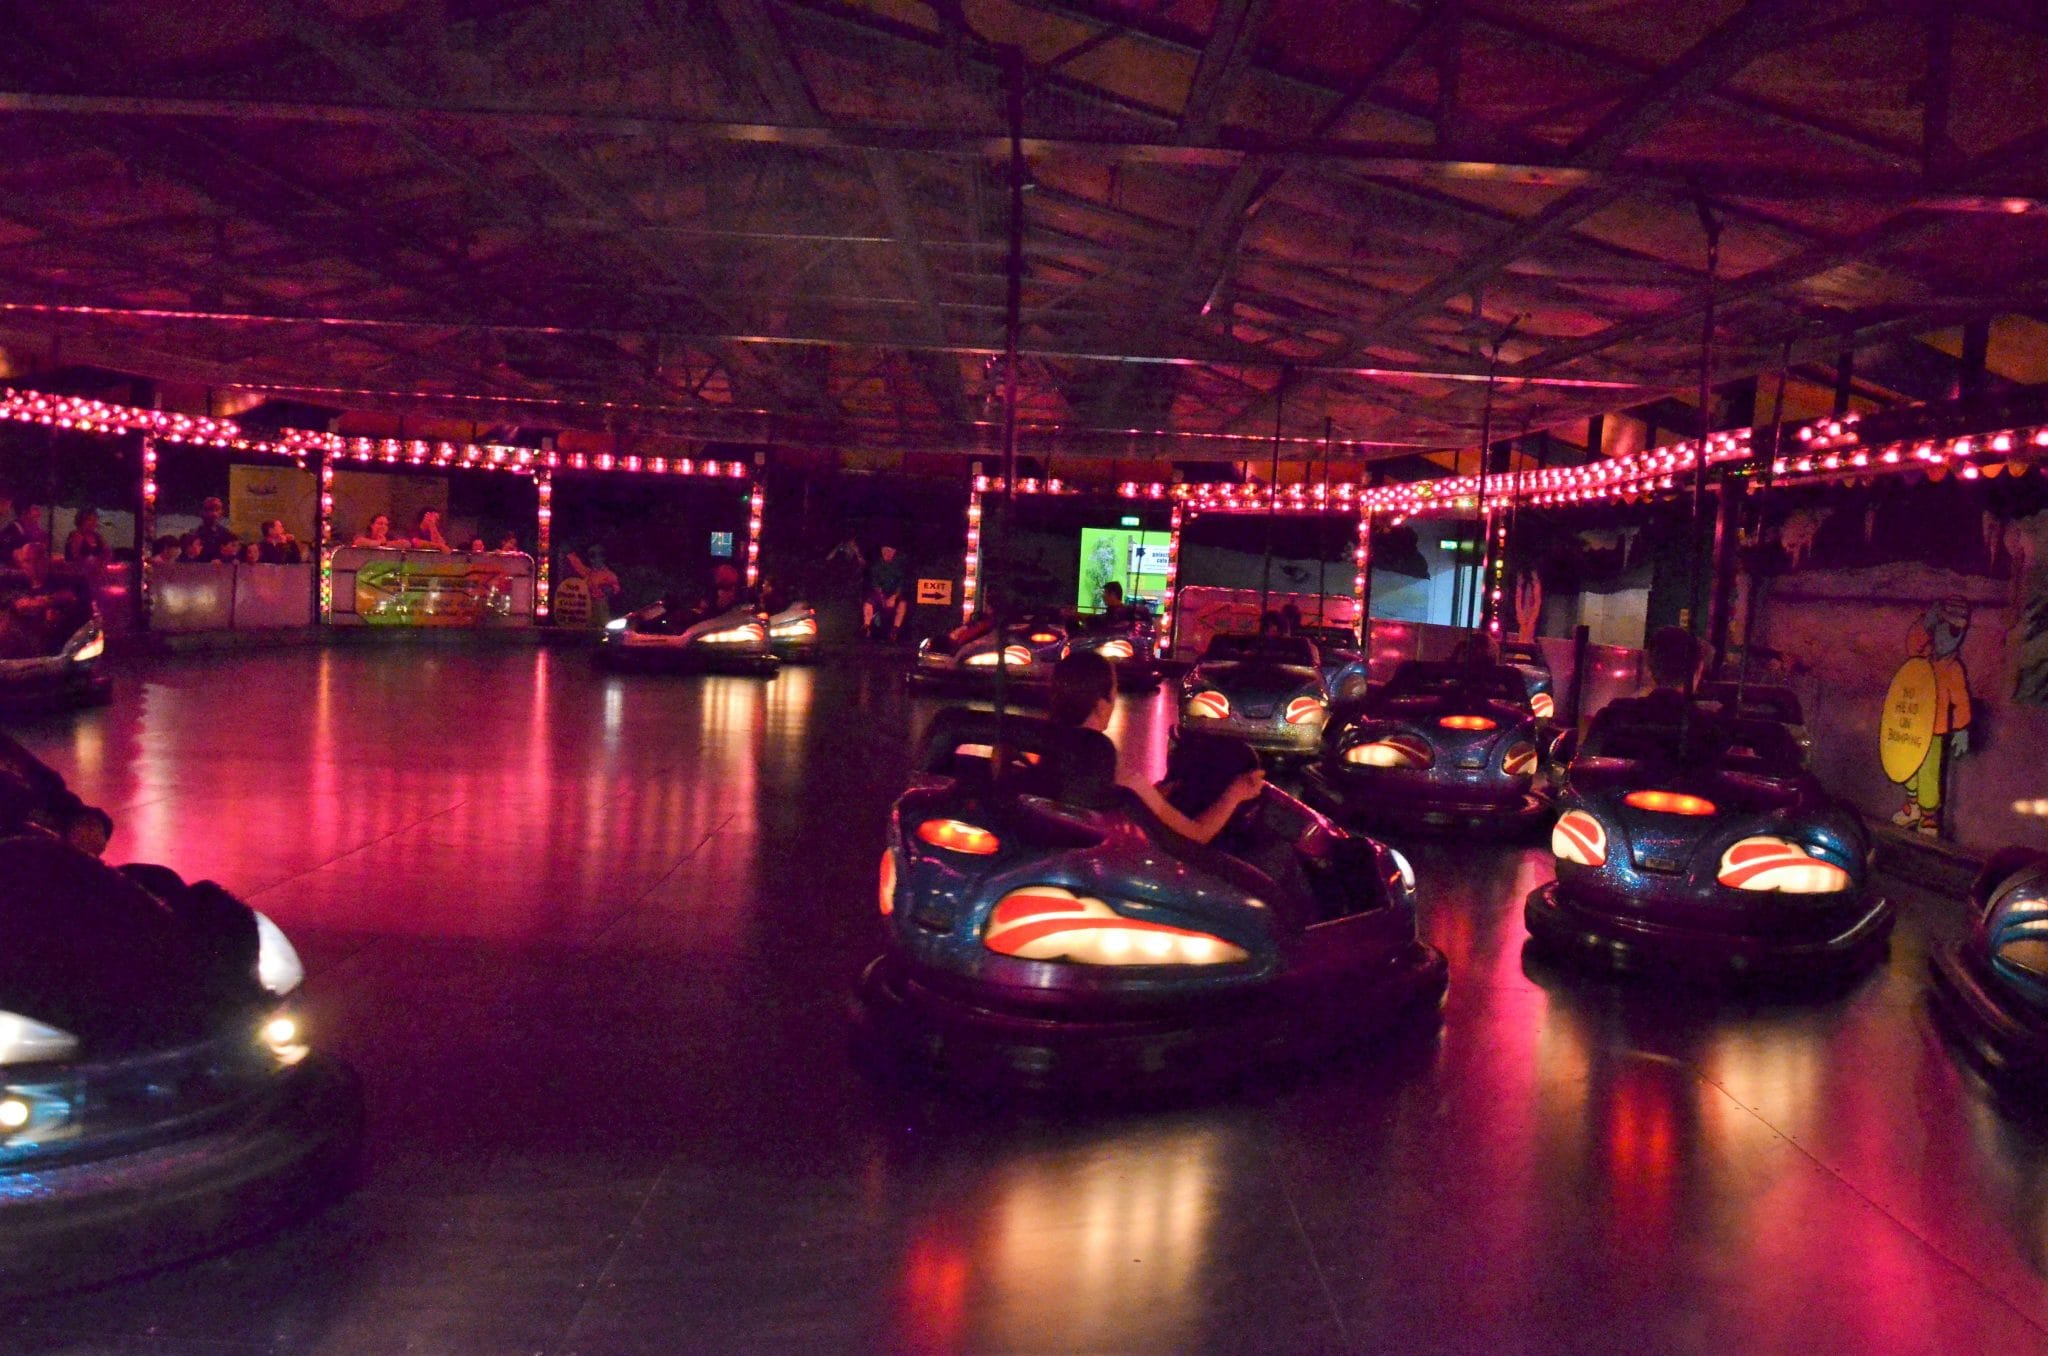 Dodgems in the dark